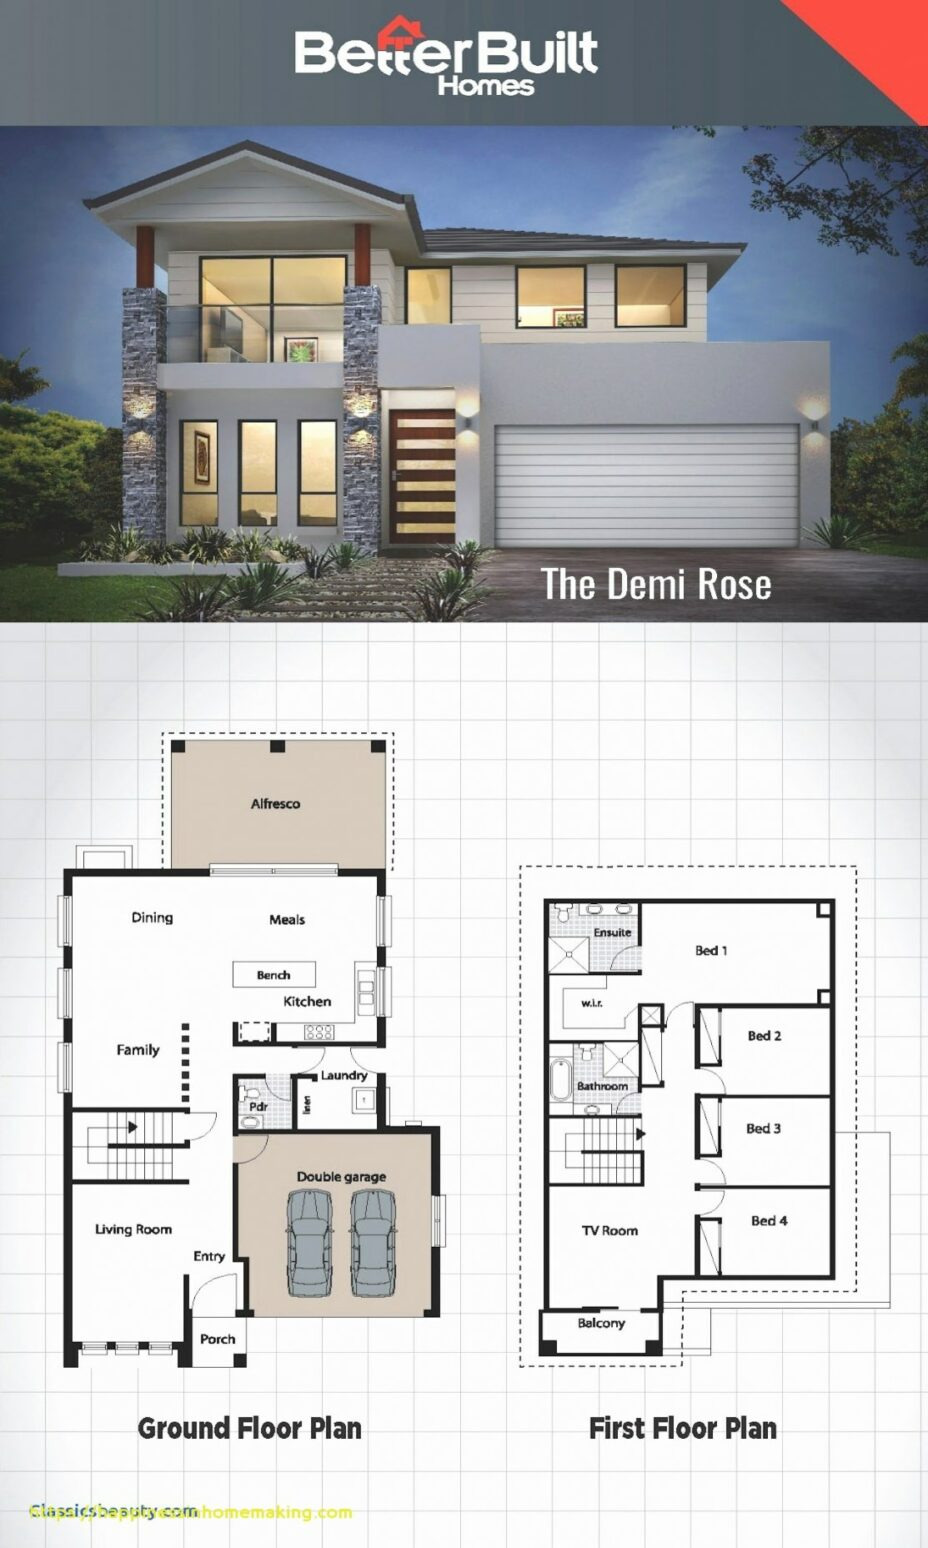 barn house plans small house plans affordable inspirational cheap home plans of barn house plans 928x1548